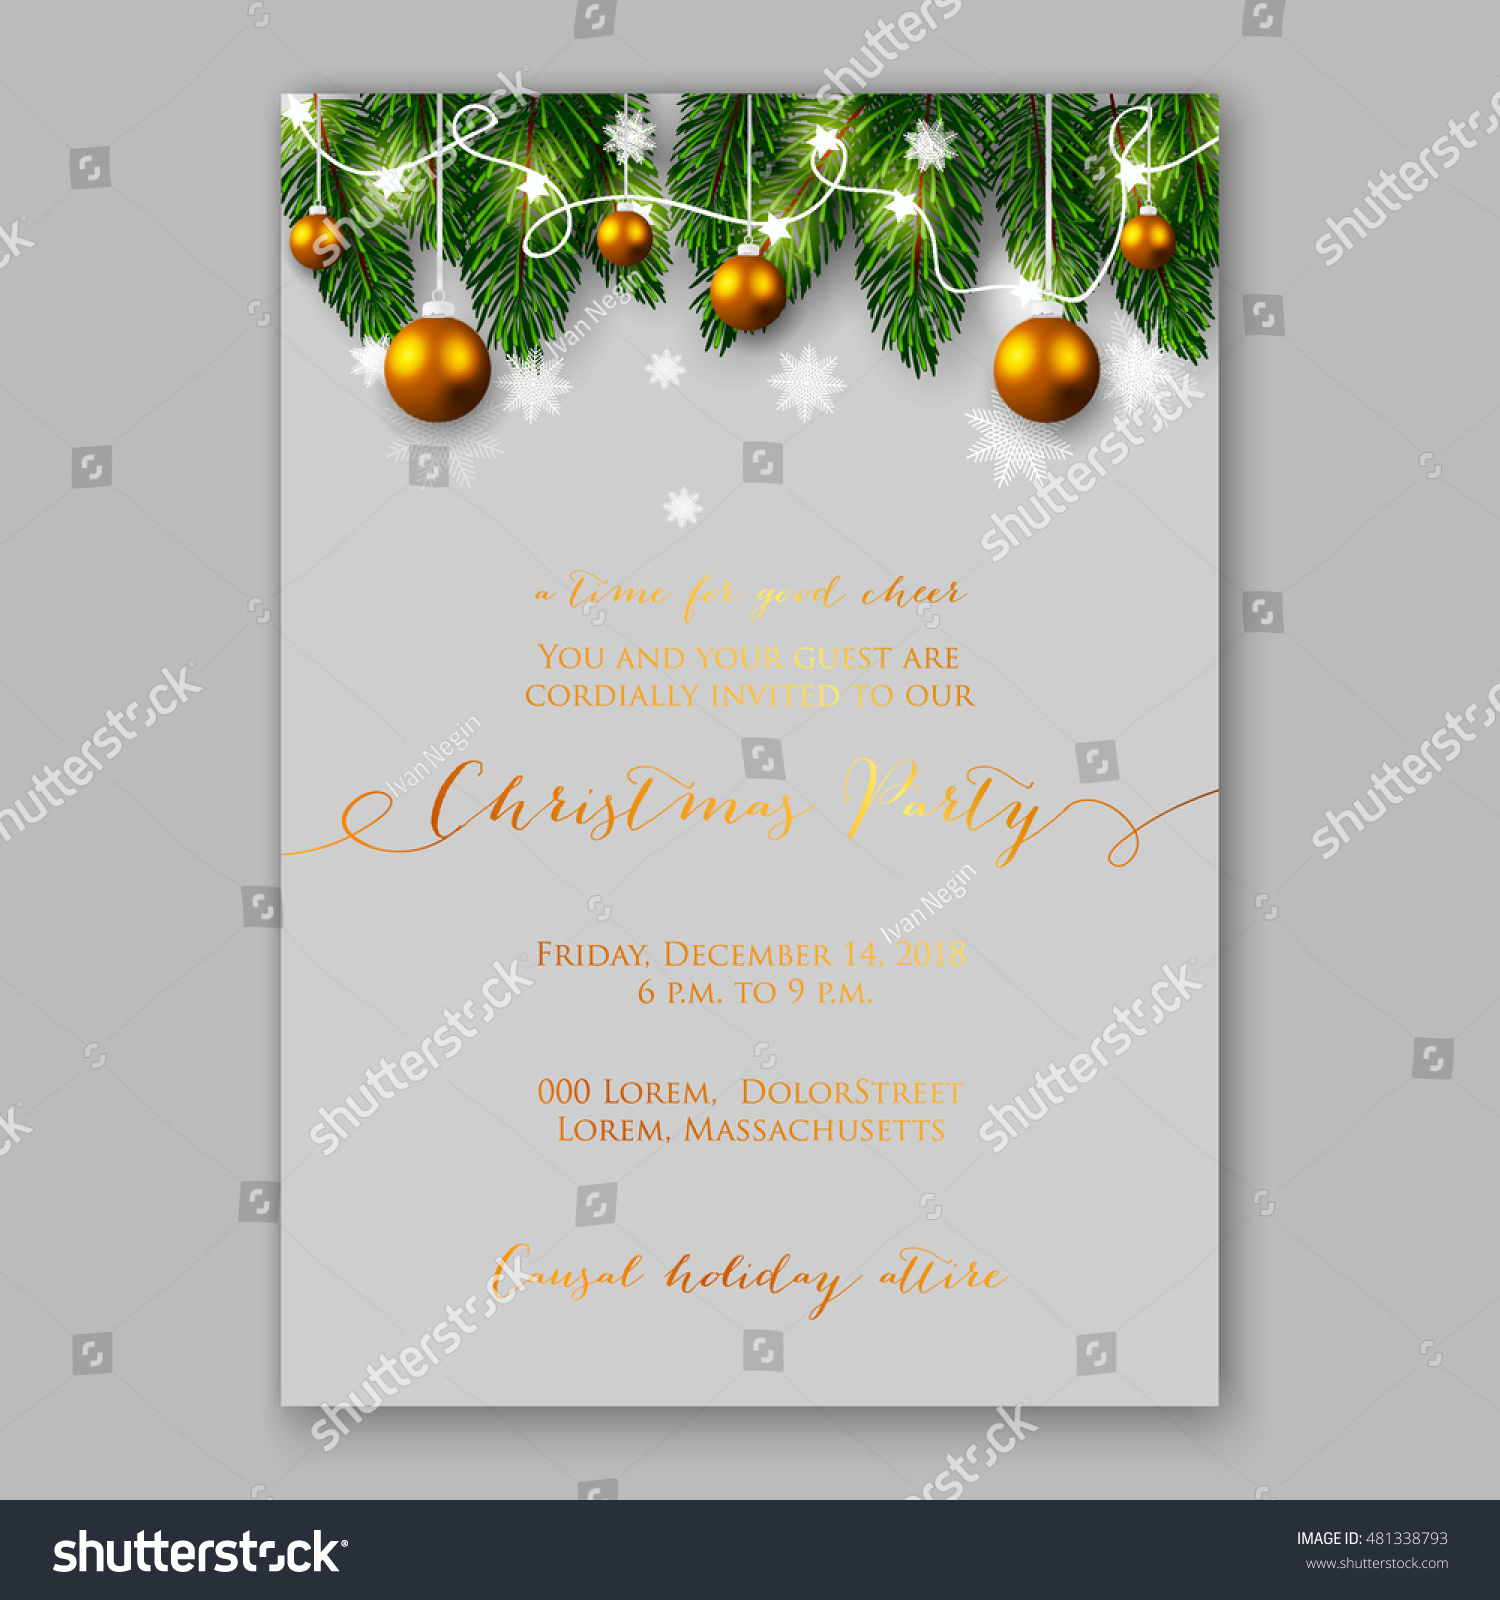 christmas party invitation holiday wreath needle stock vector